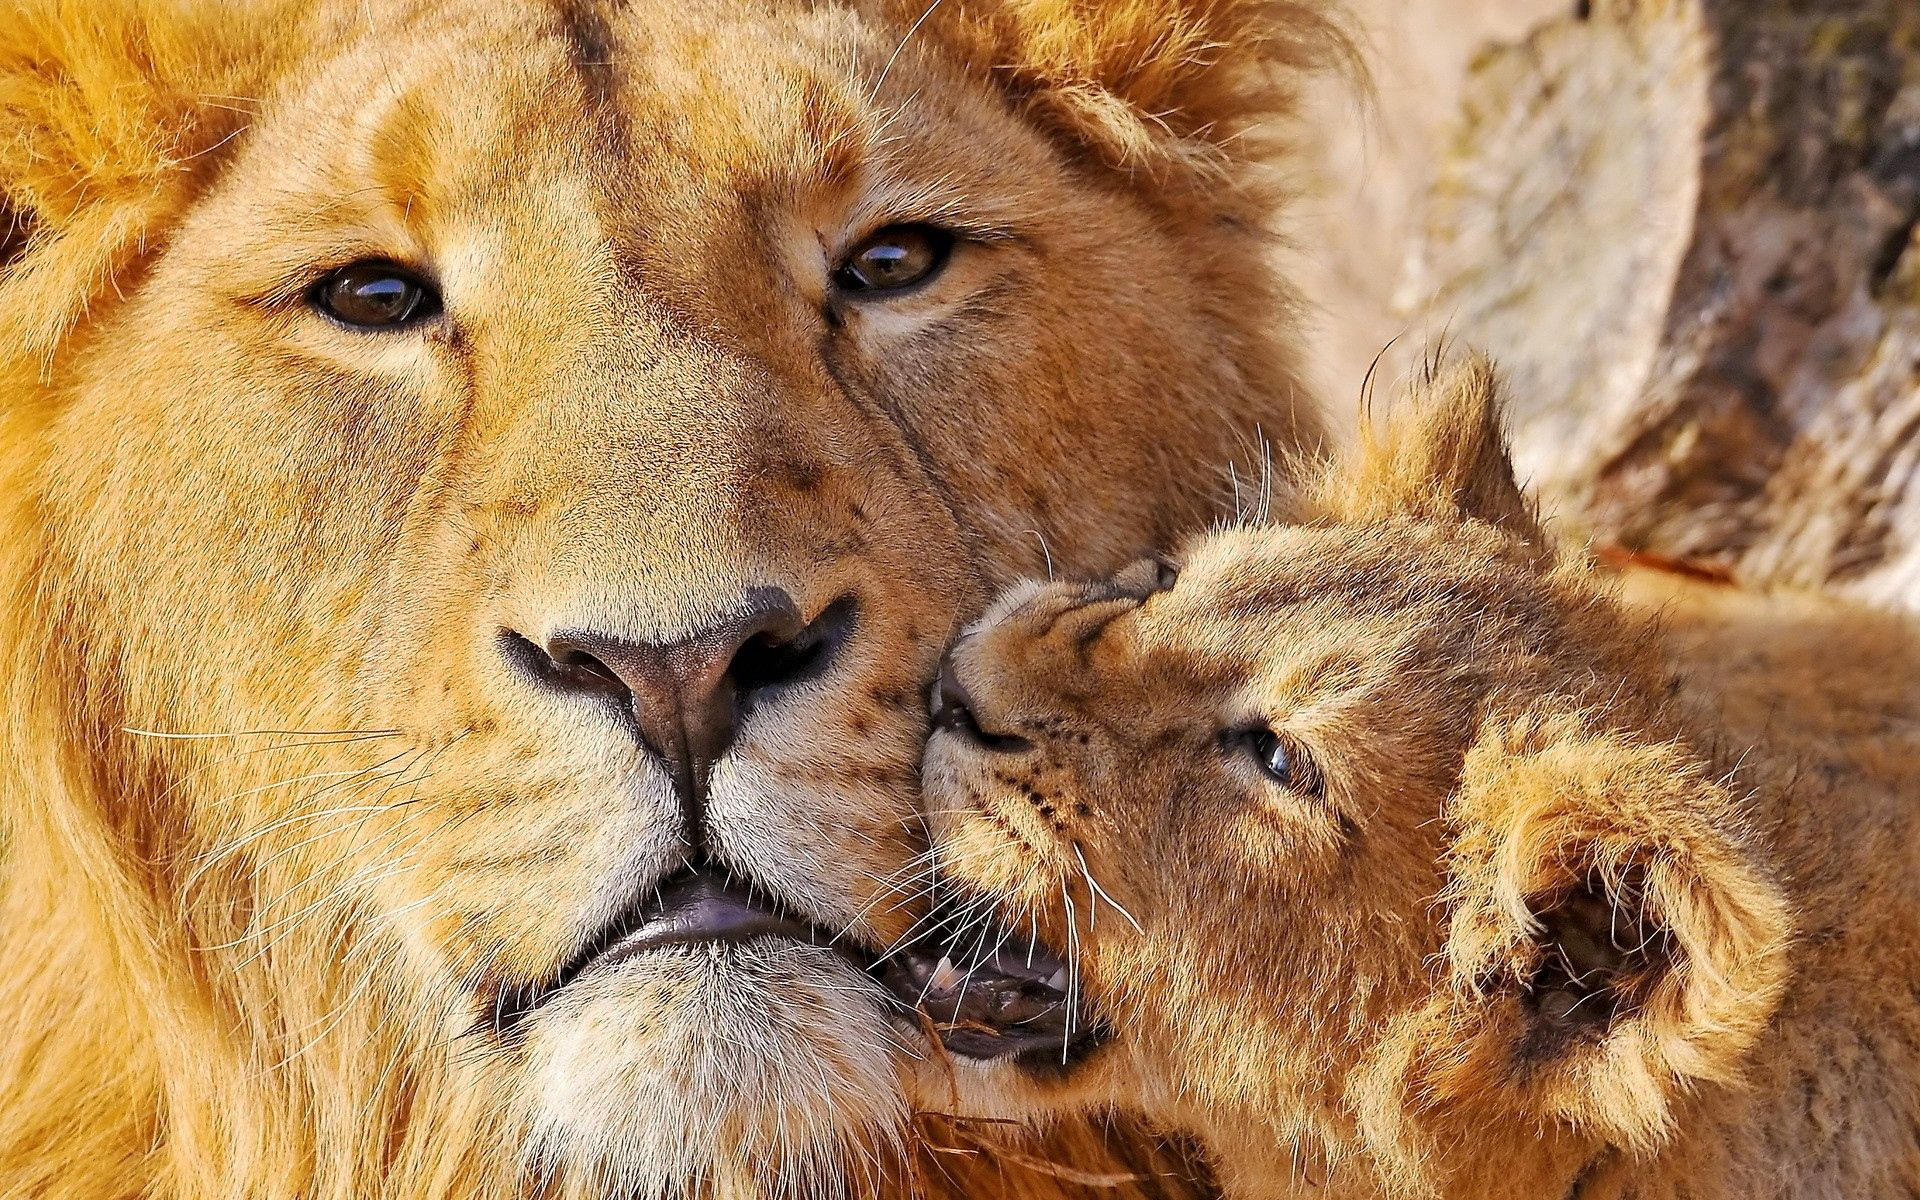 58754 download wallpaper Animals, Lioness, Lion Cub, Lion, Muzzle, Care, Big Cat screensavers and pictures for free